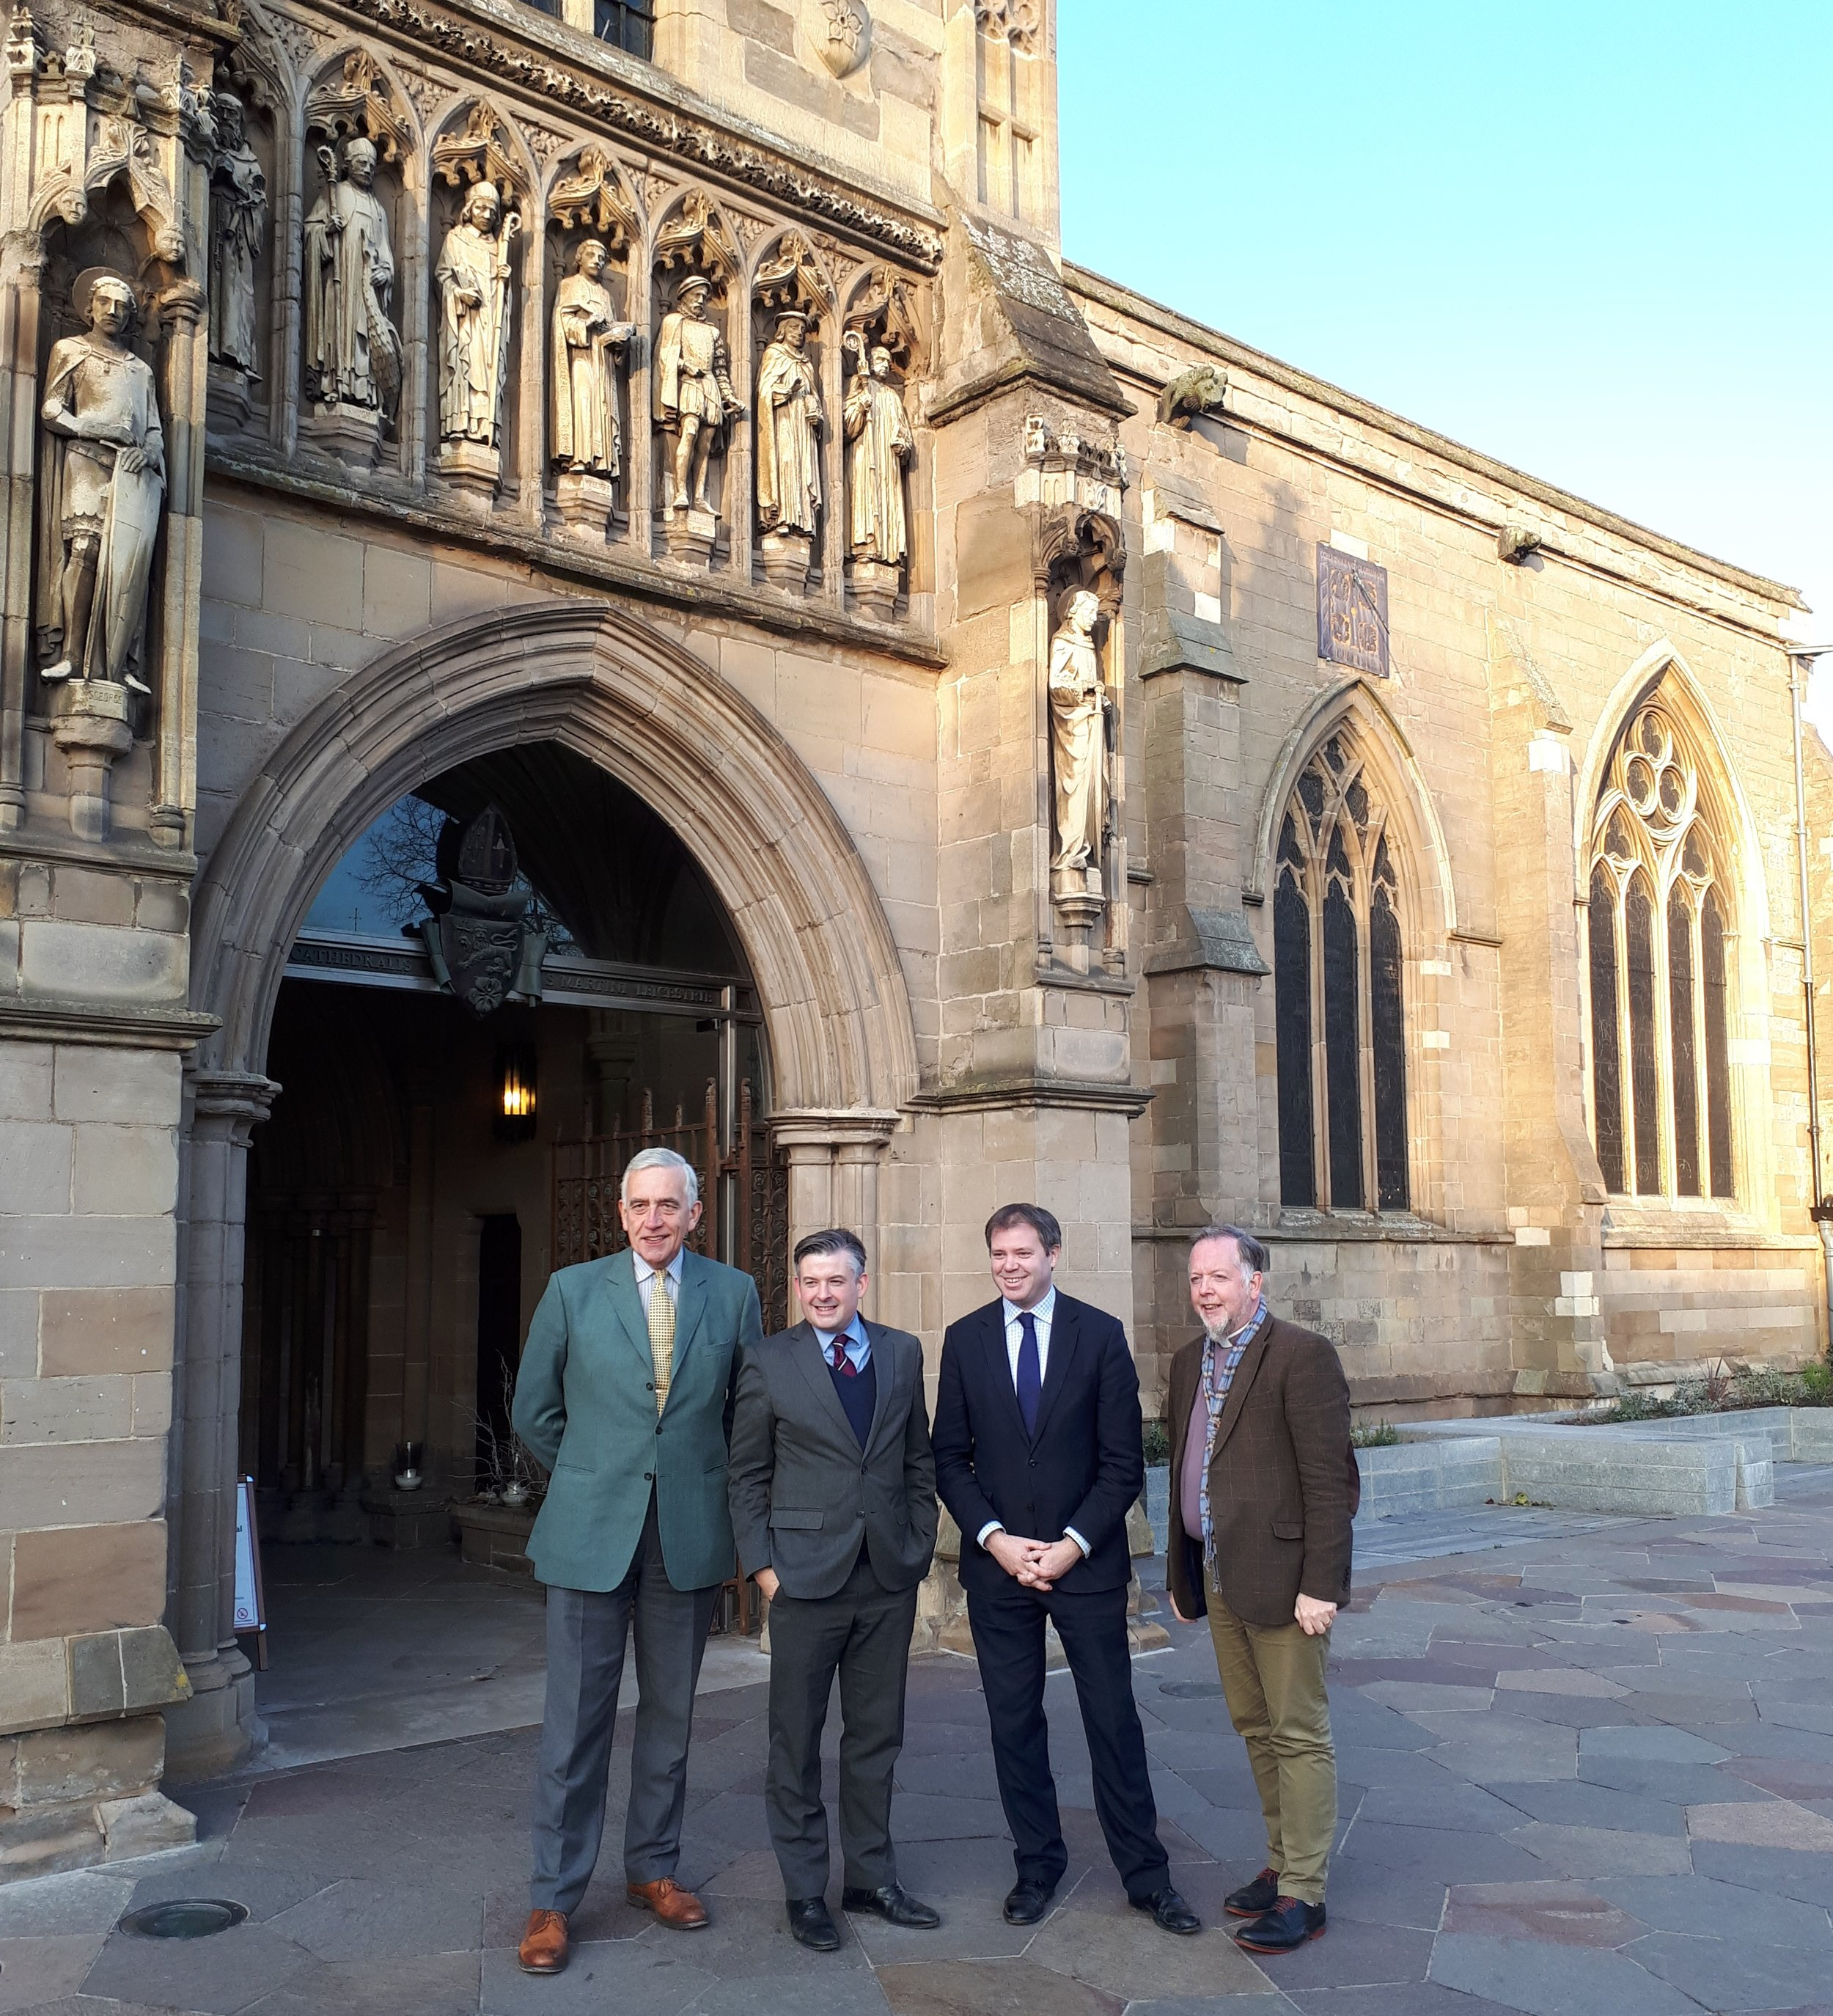 Jon, along with Ed Argar MP, visits Leicester Cathedral to congratulate the Dean of Leicester on the progress of Leicester Cathedral Revealed - Friday December 14 2018